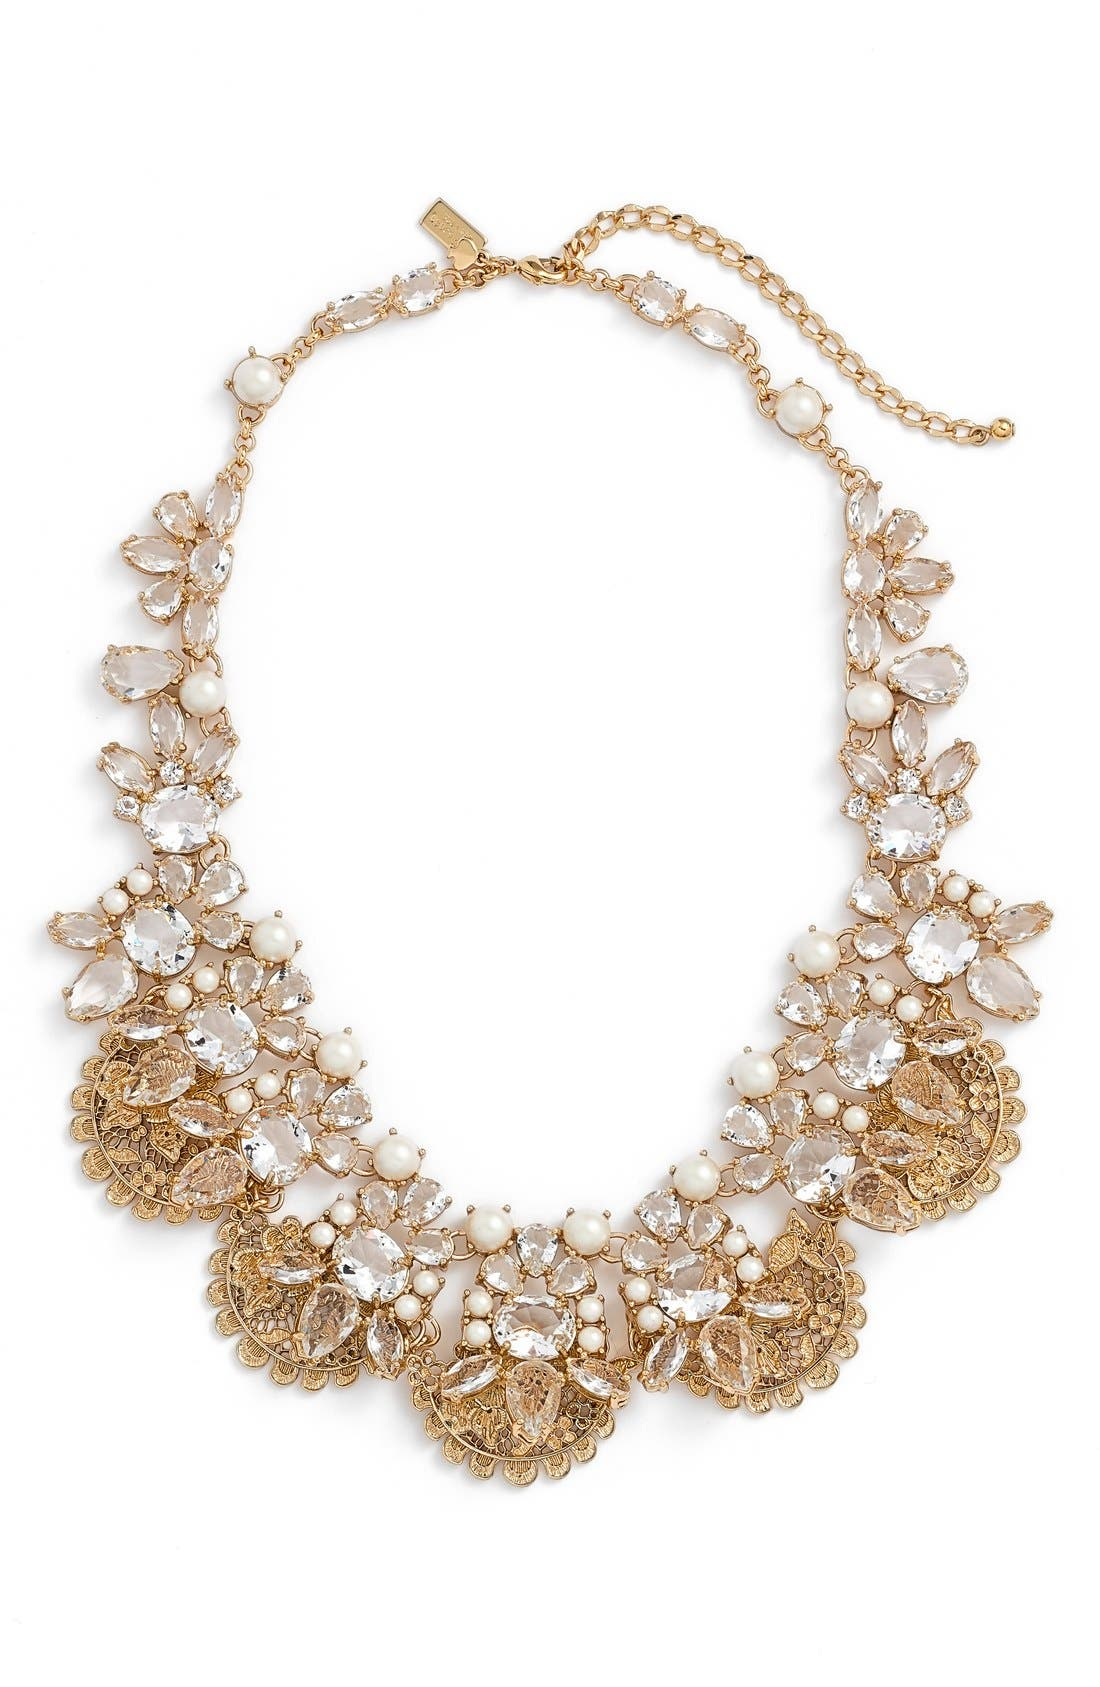 Alternate Image 1 Selected - kate spade new york 'chantilly gems' statement necklace